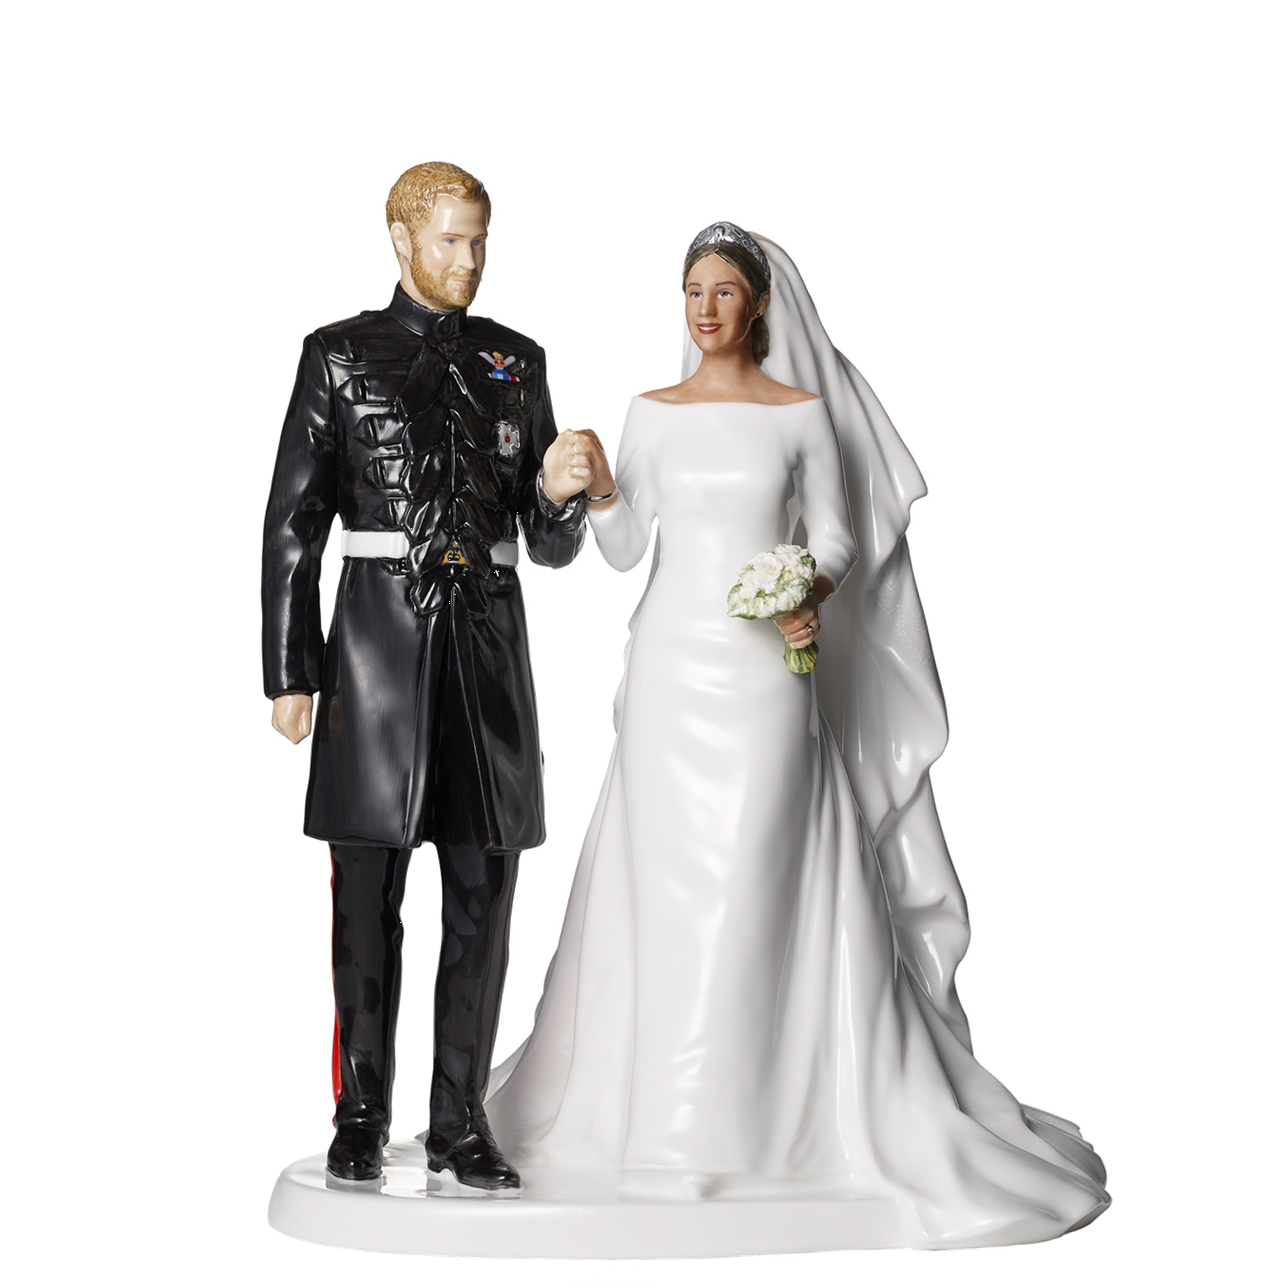 Royal Wedding Day - Harry and Meghan